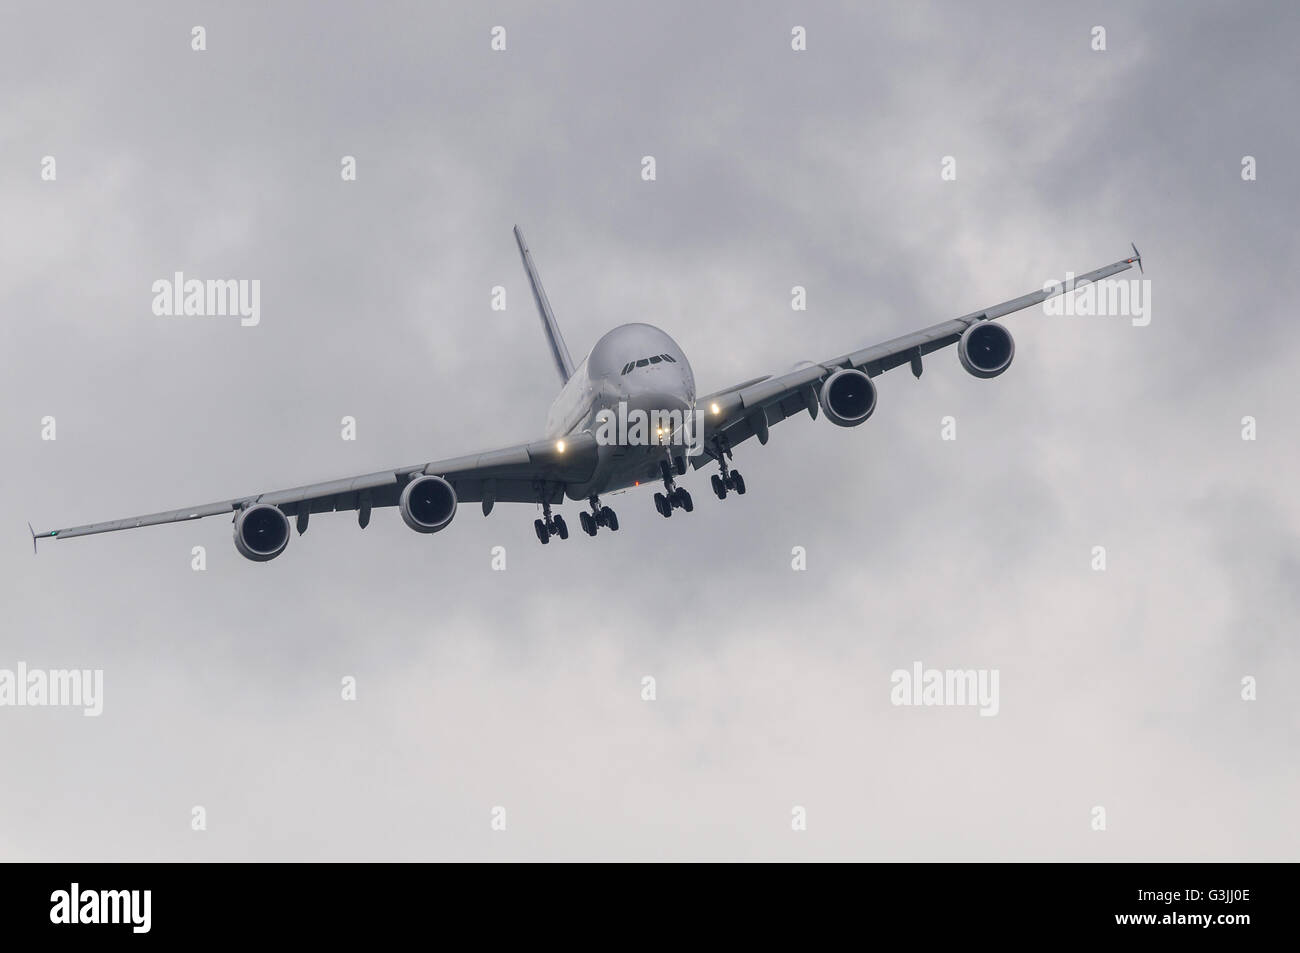 Passenger airliner approaching for landing in bad weather - Stock Image